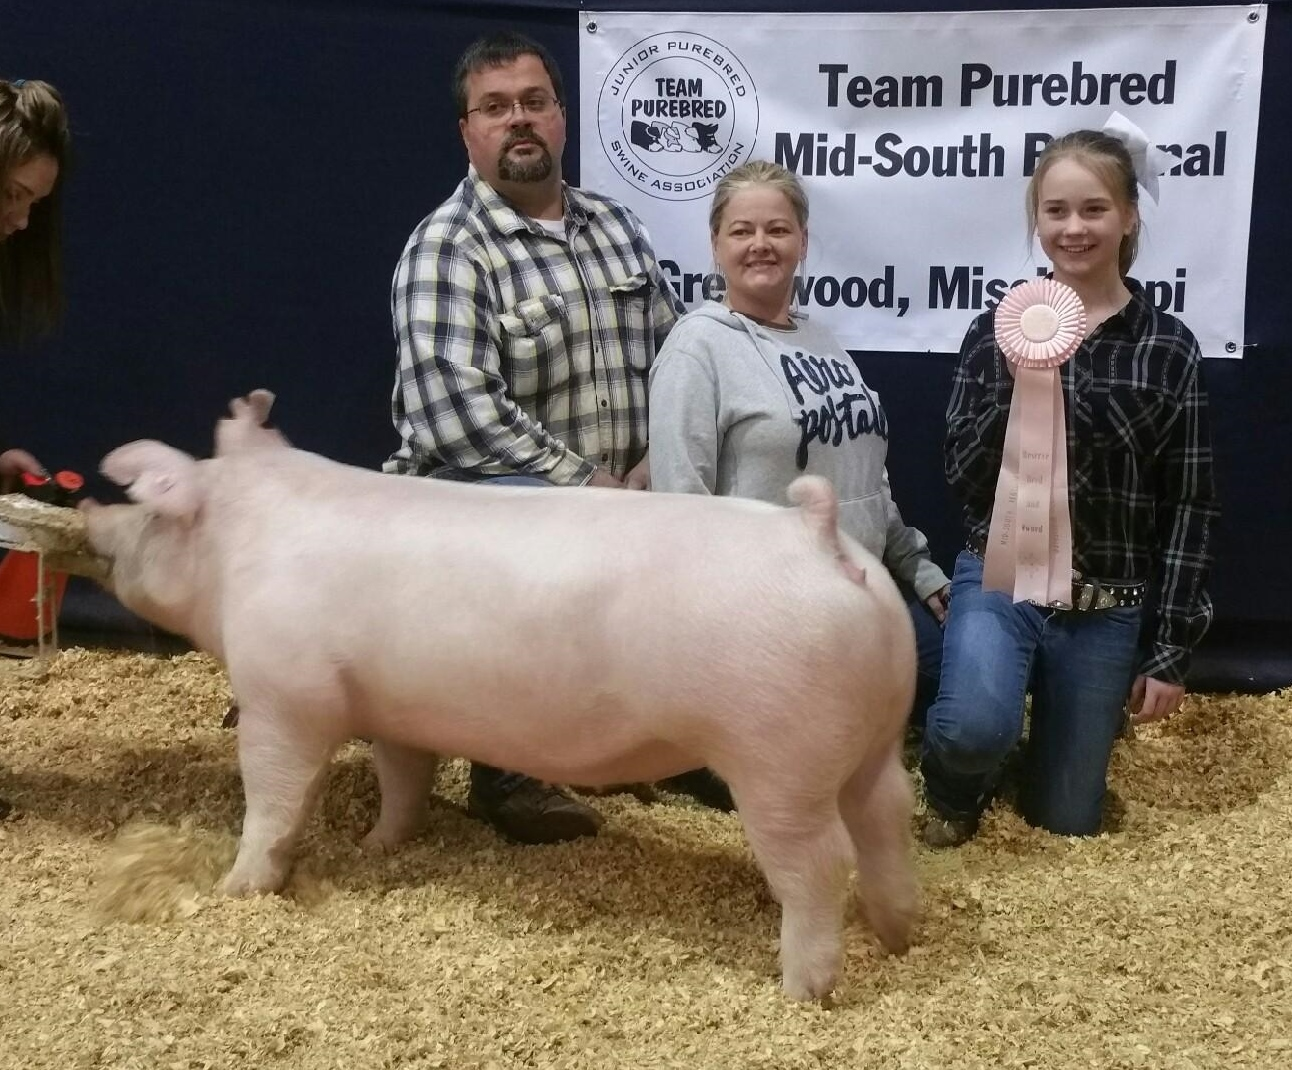 Hannah Sanders 2017 Team Purebred  Southeastern Regional Show Reserve Champion Bred and Owned Bred by: Clay Prater and Hannah Sanders